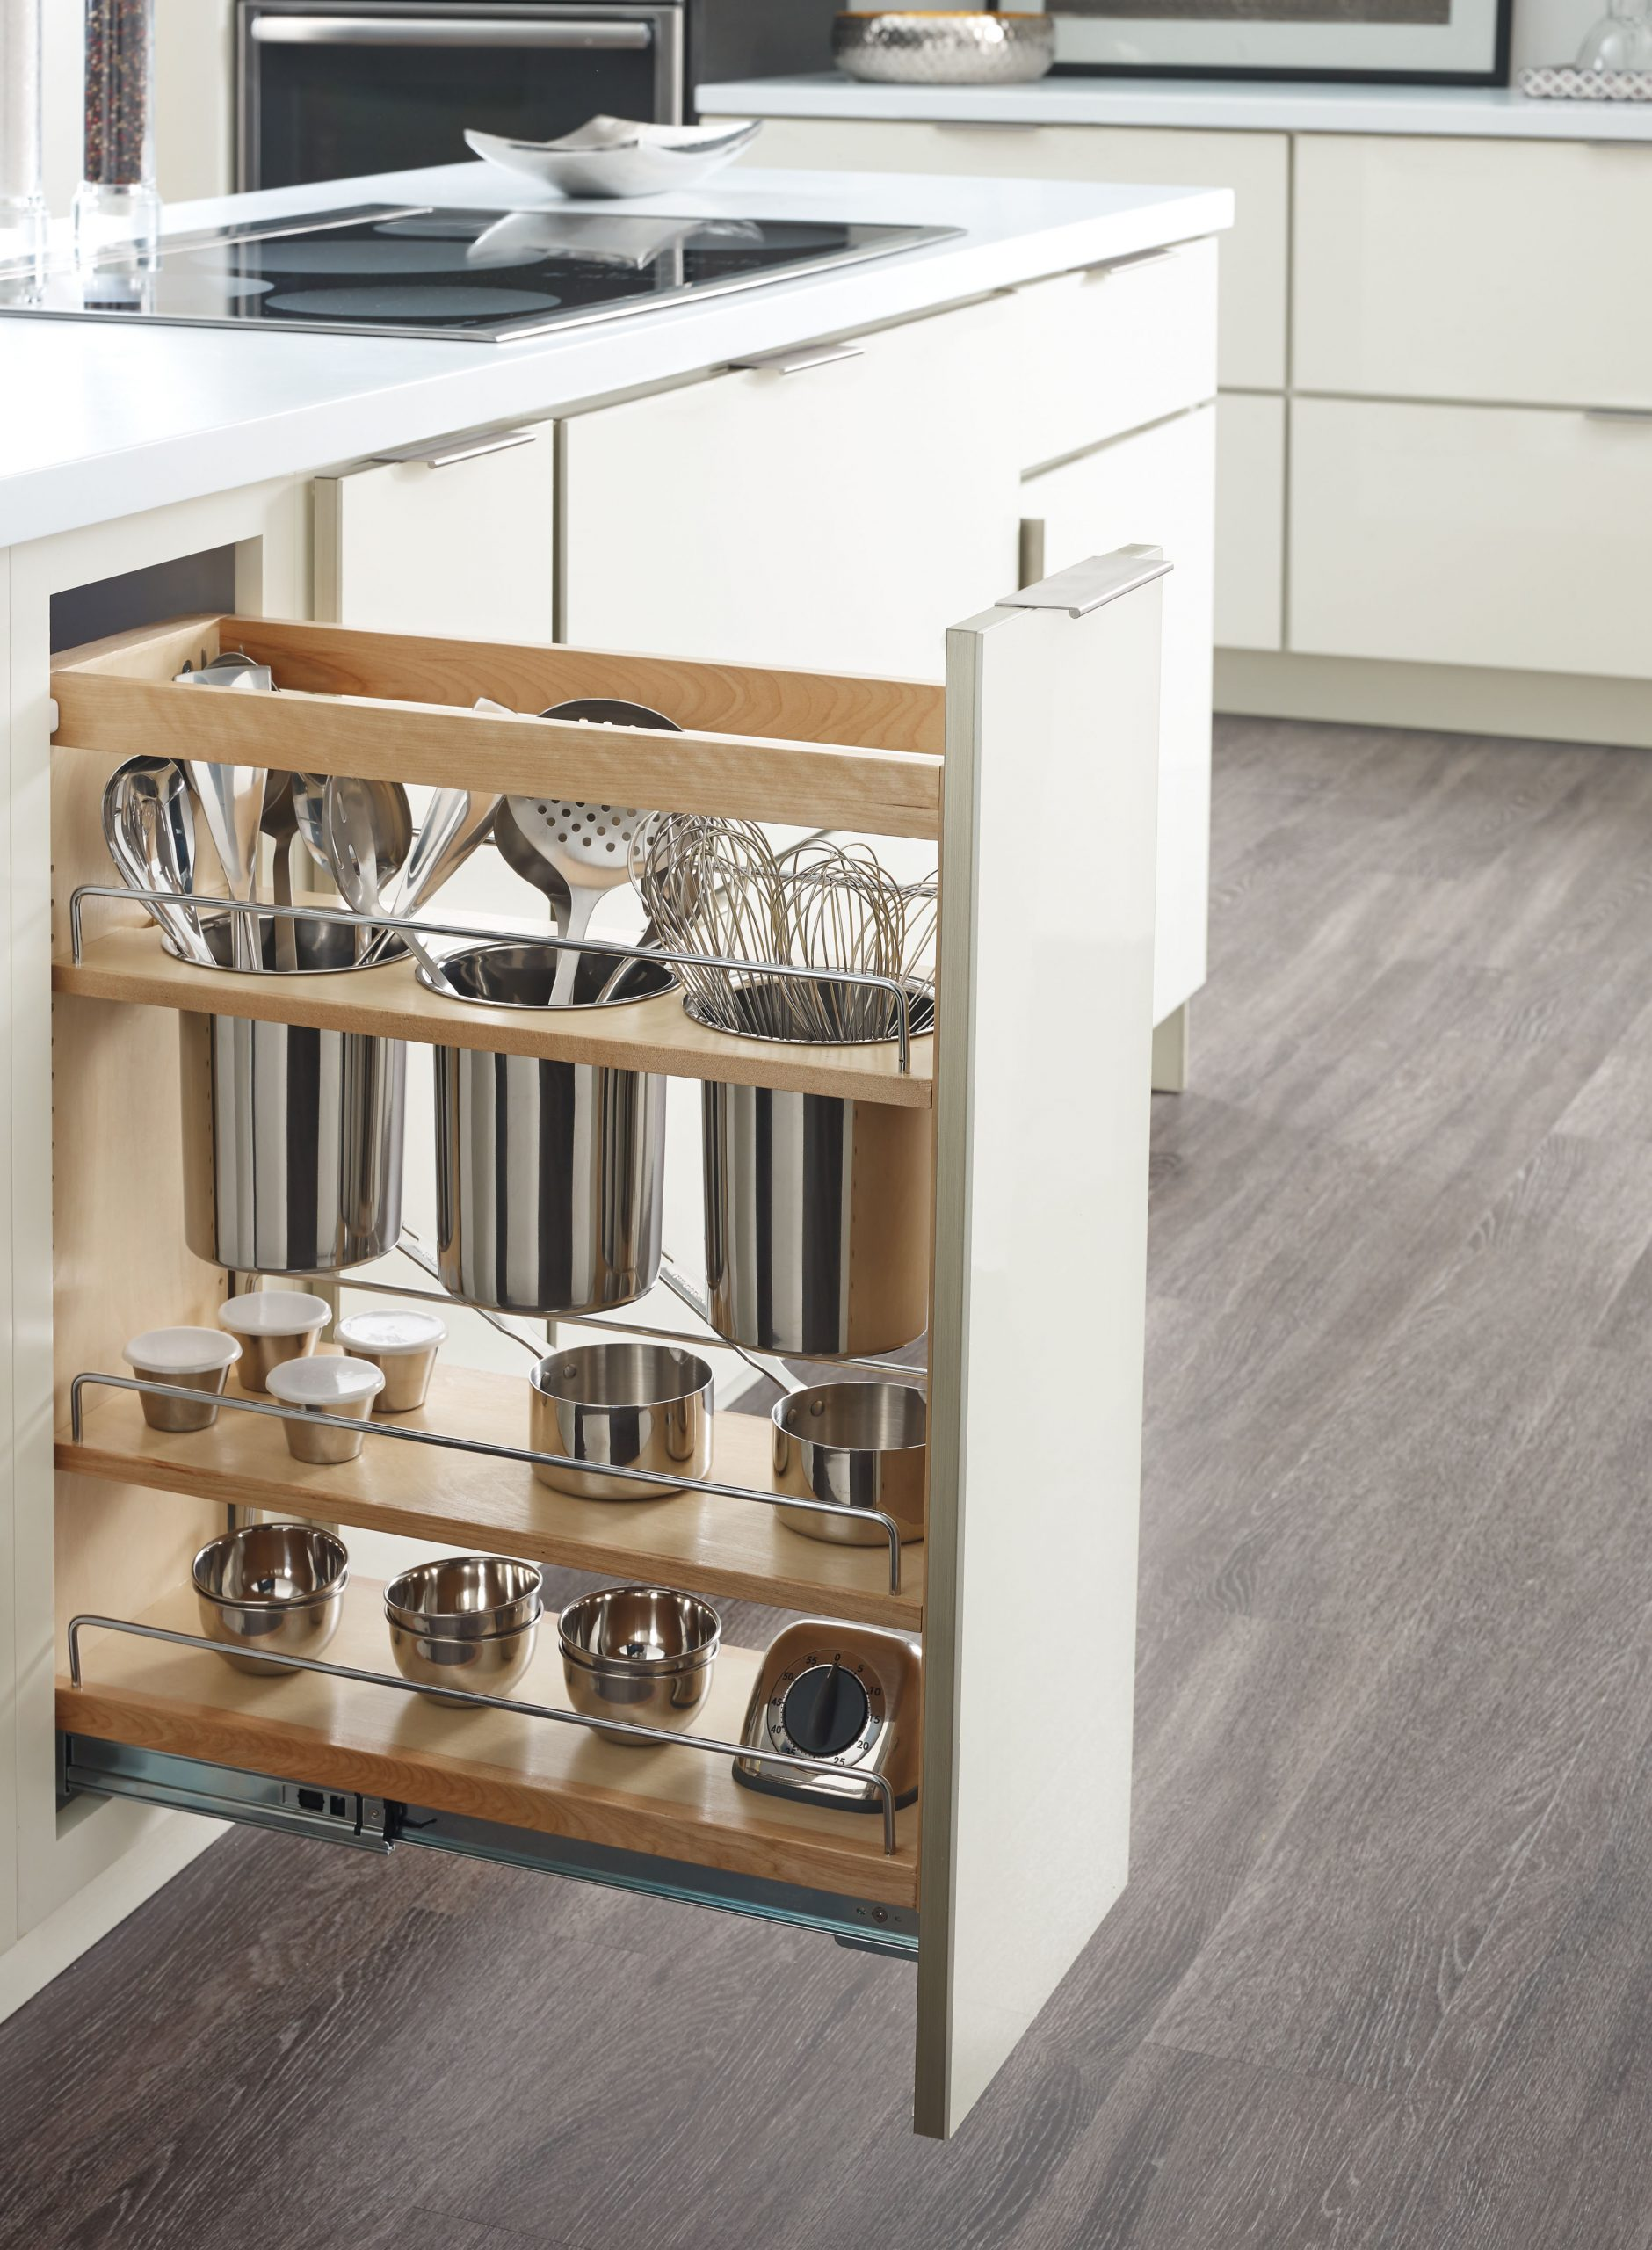 Base Utensil Pantry Pull-Out